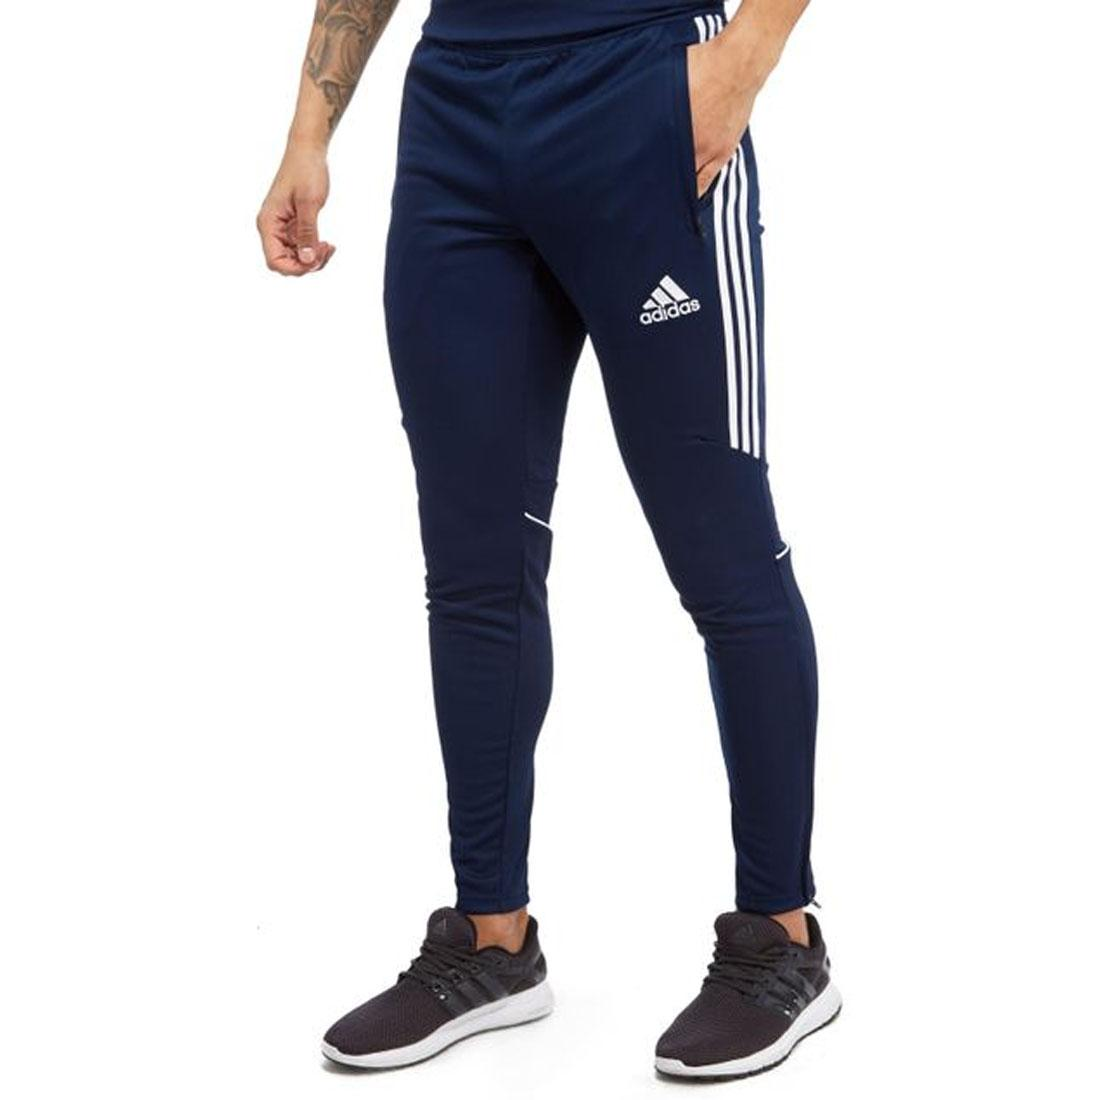 628f340bcdd4 adidas Tango Cage Tracksuit Bottoms Mens Dark Blue Slim Fit Track Pants  Large